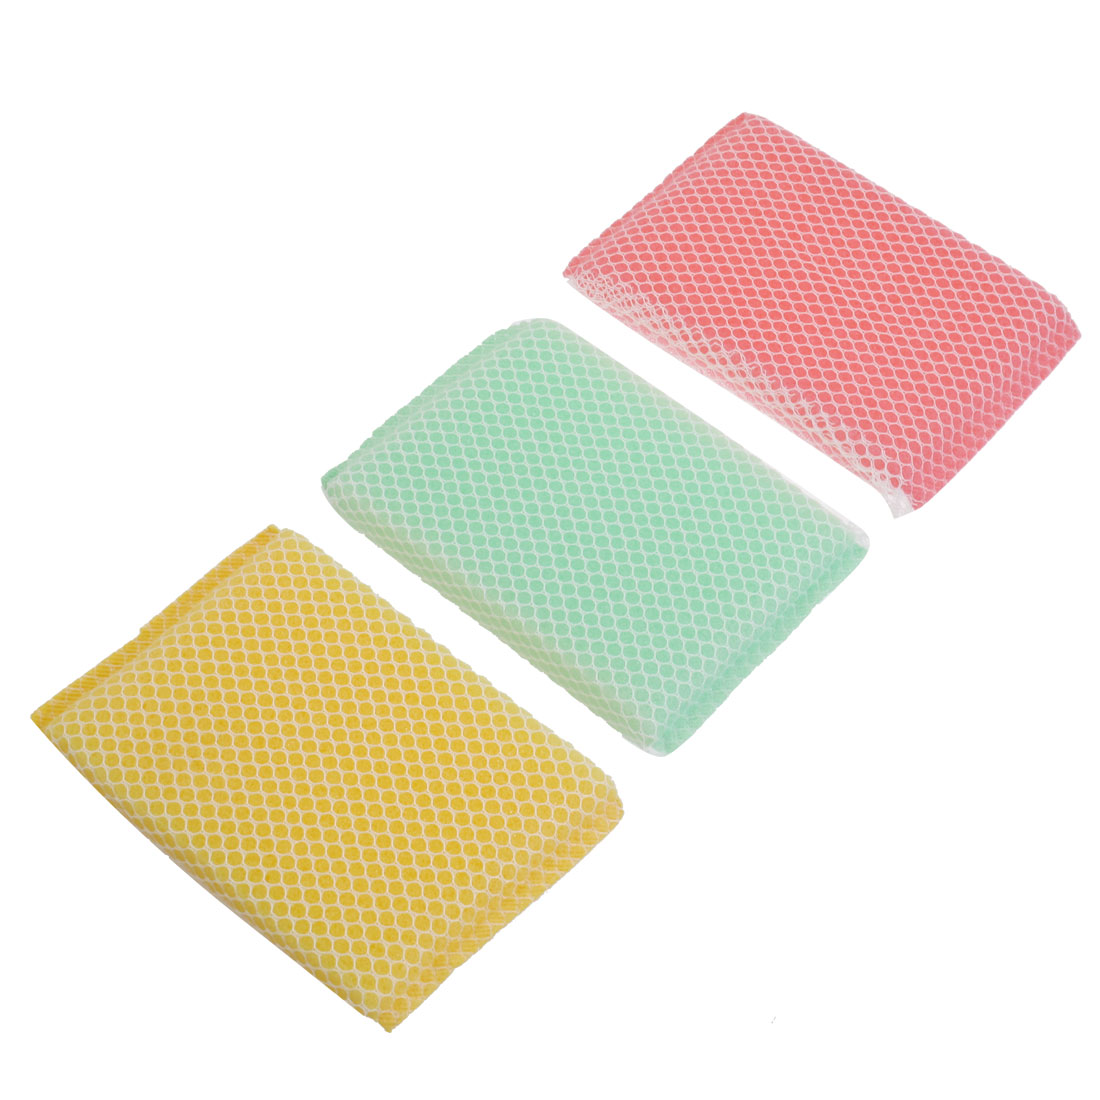 3 Pcs Bowl Dish Cup Net Washer Cleaning Sponge Cleaners